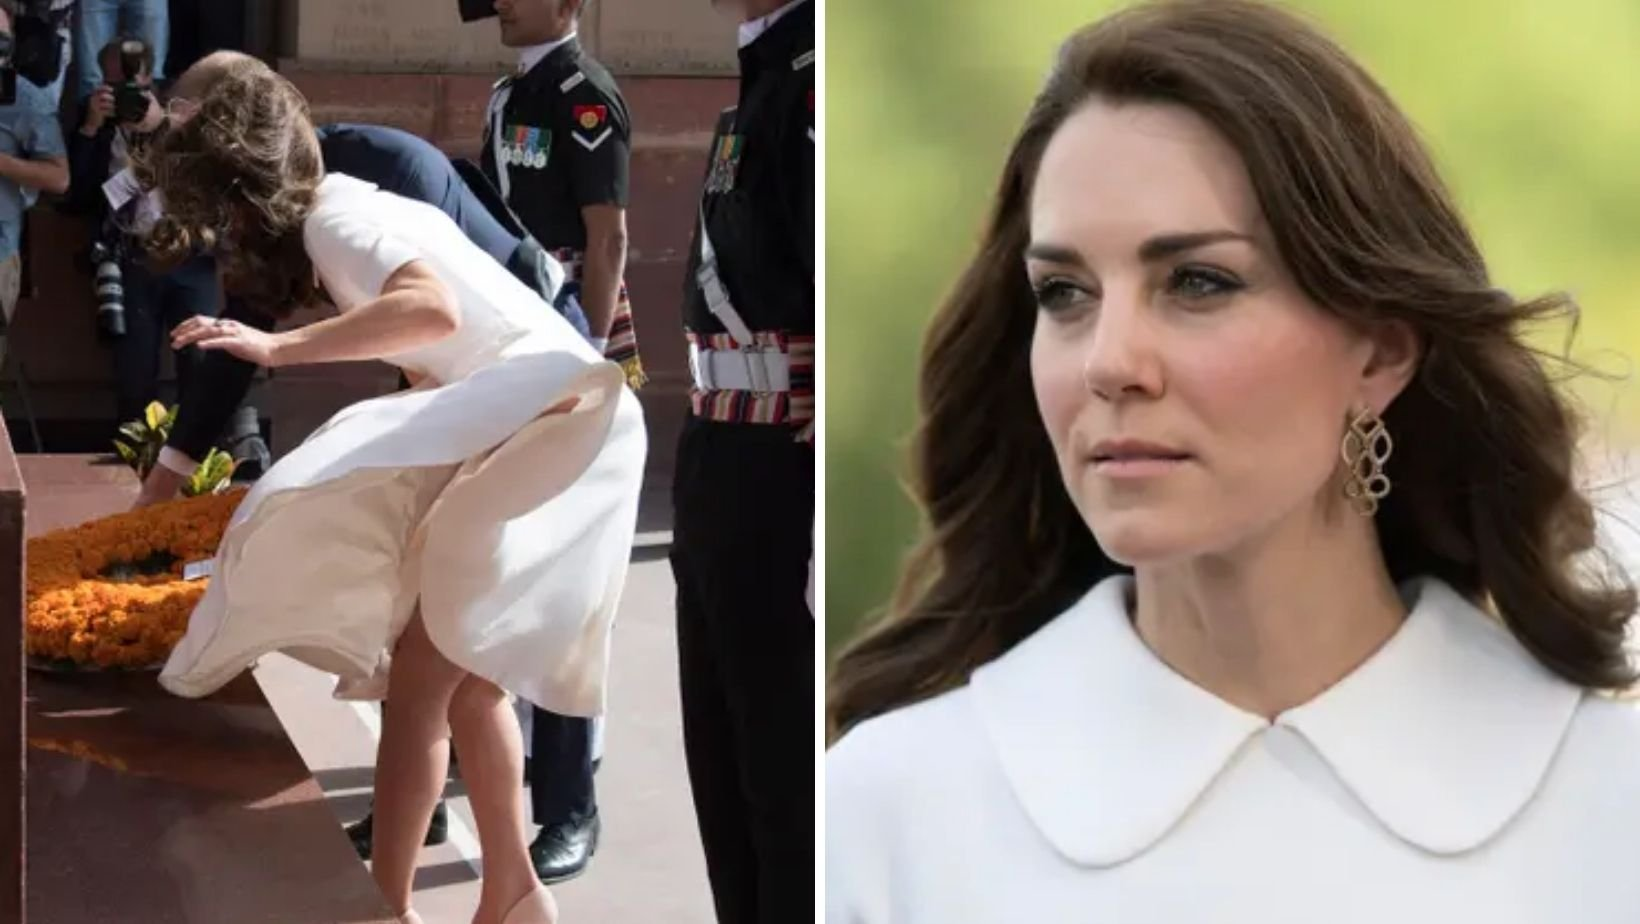 1 18.jpg?resize=1200,630 - Kate Middleton Had Serious Wardrobe Fail After The Wind Blew Her Dress Up During Tour